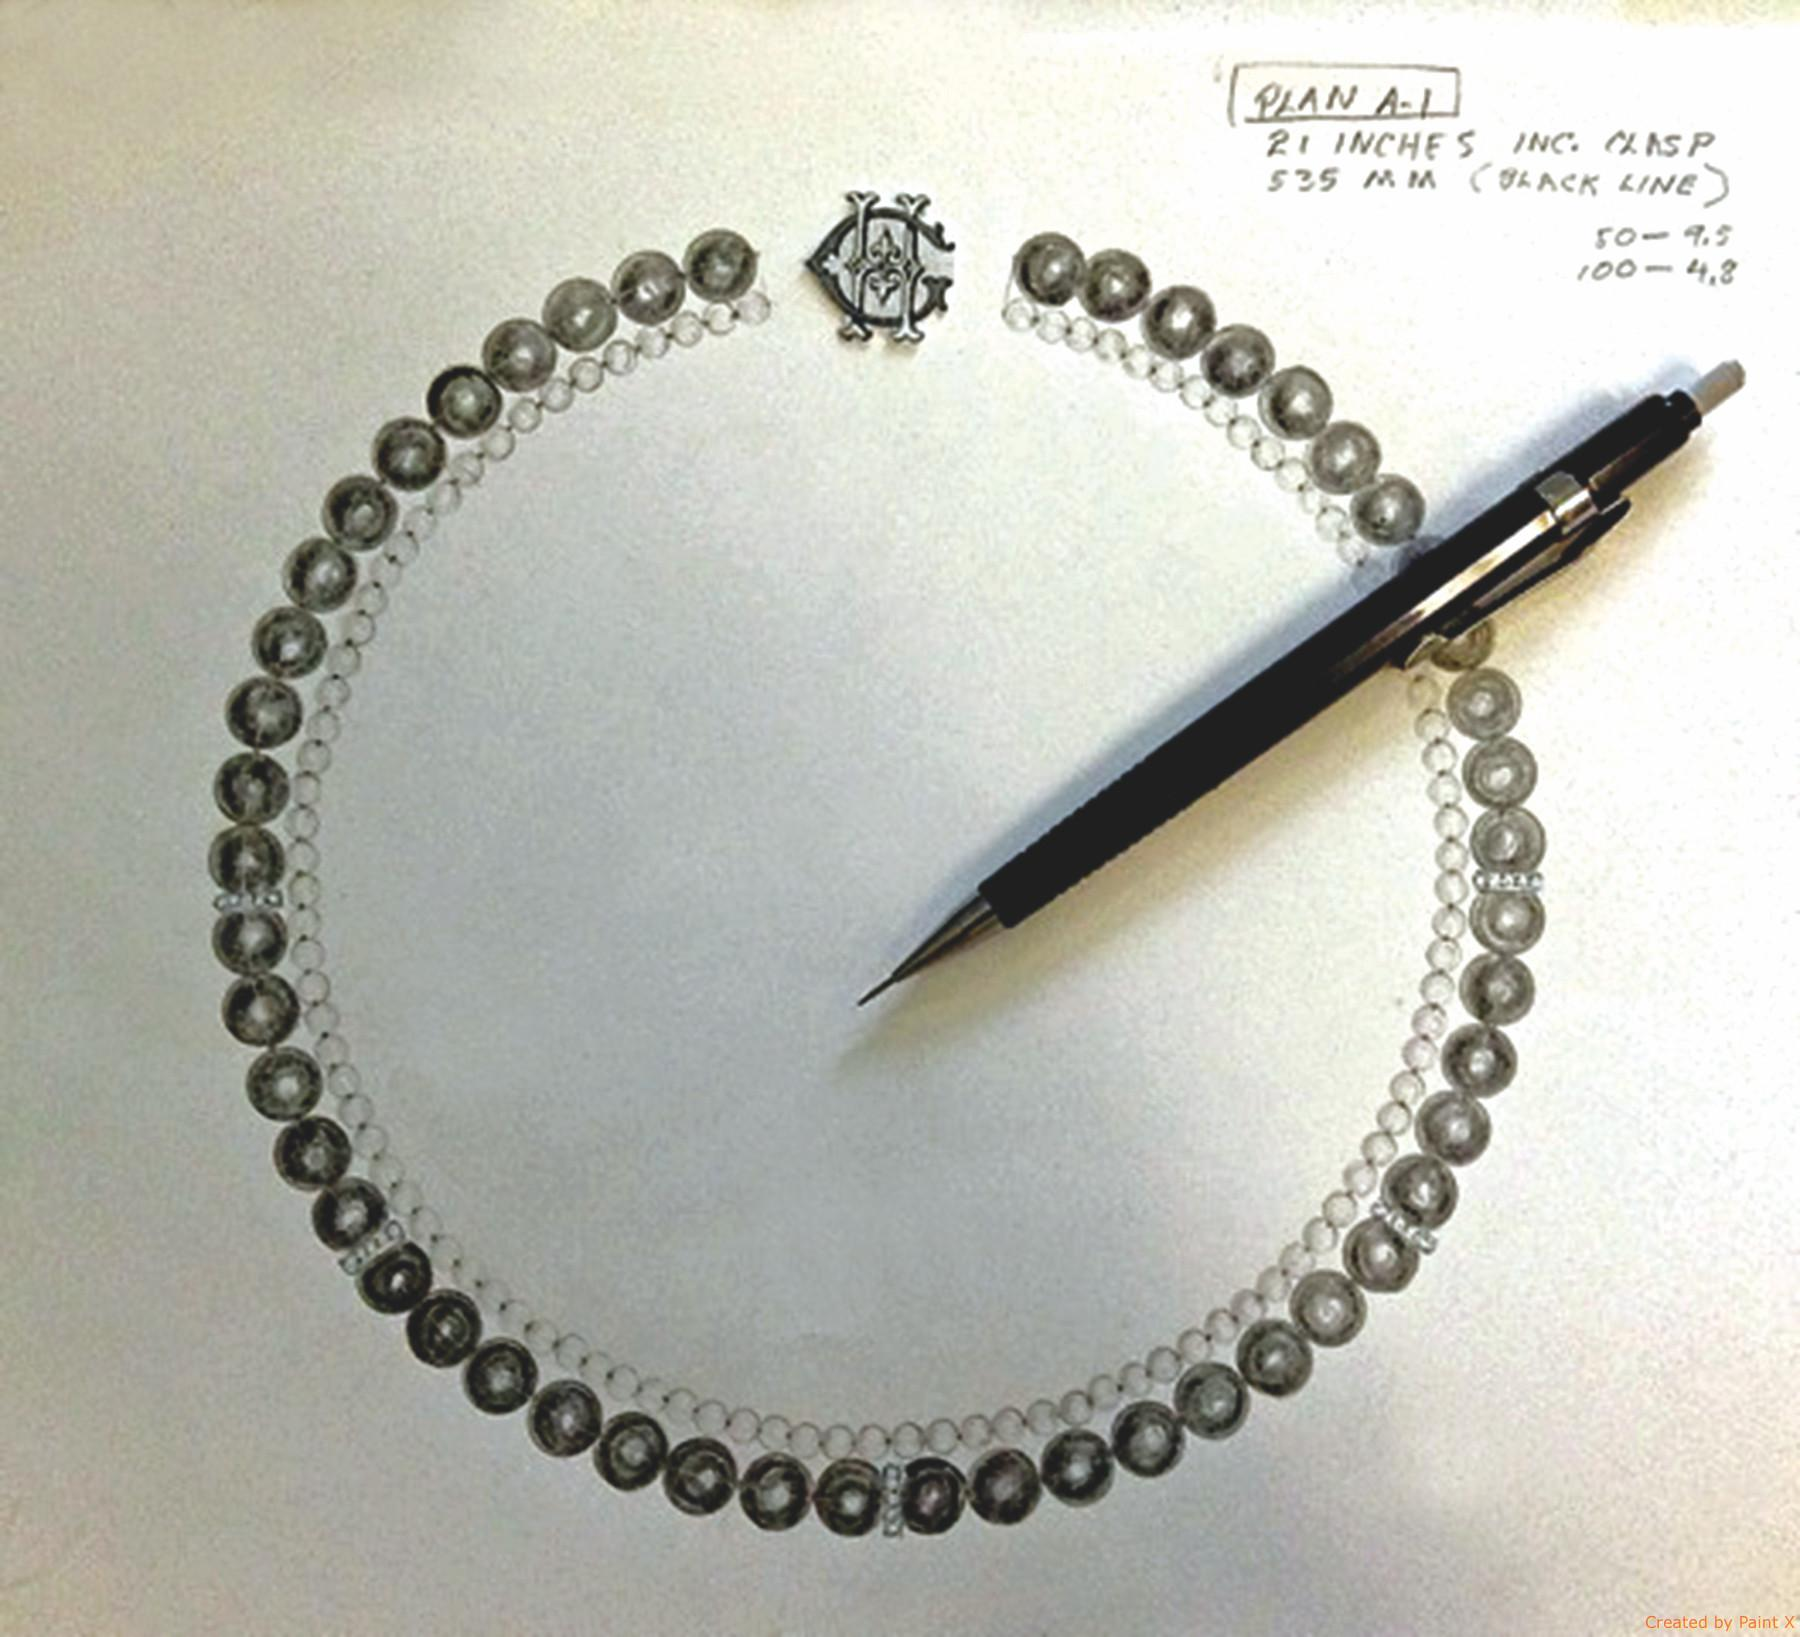 Chanel Black White Pearl Necklace Replica Jewelry